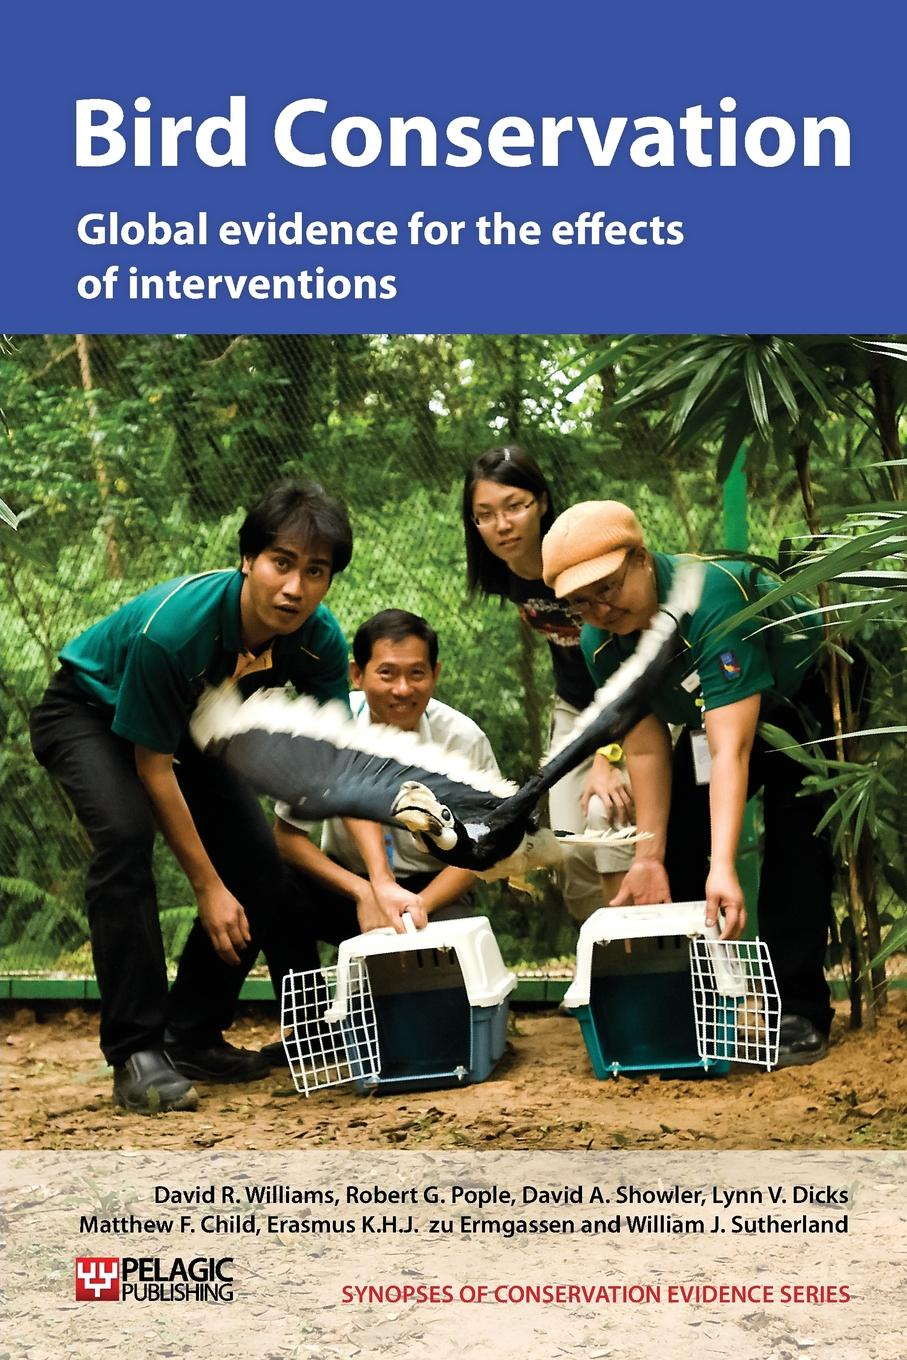 David R. Williams, Robert G. Pople, David A. Showler Bird Conservation. Global Evidence for the Effects of Interventions birds the art of ornithology